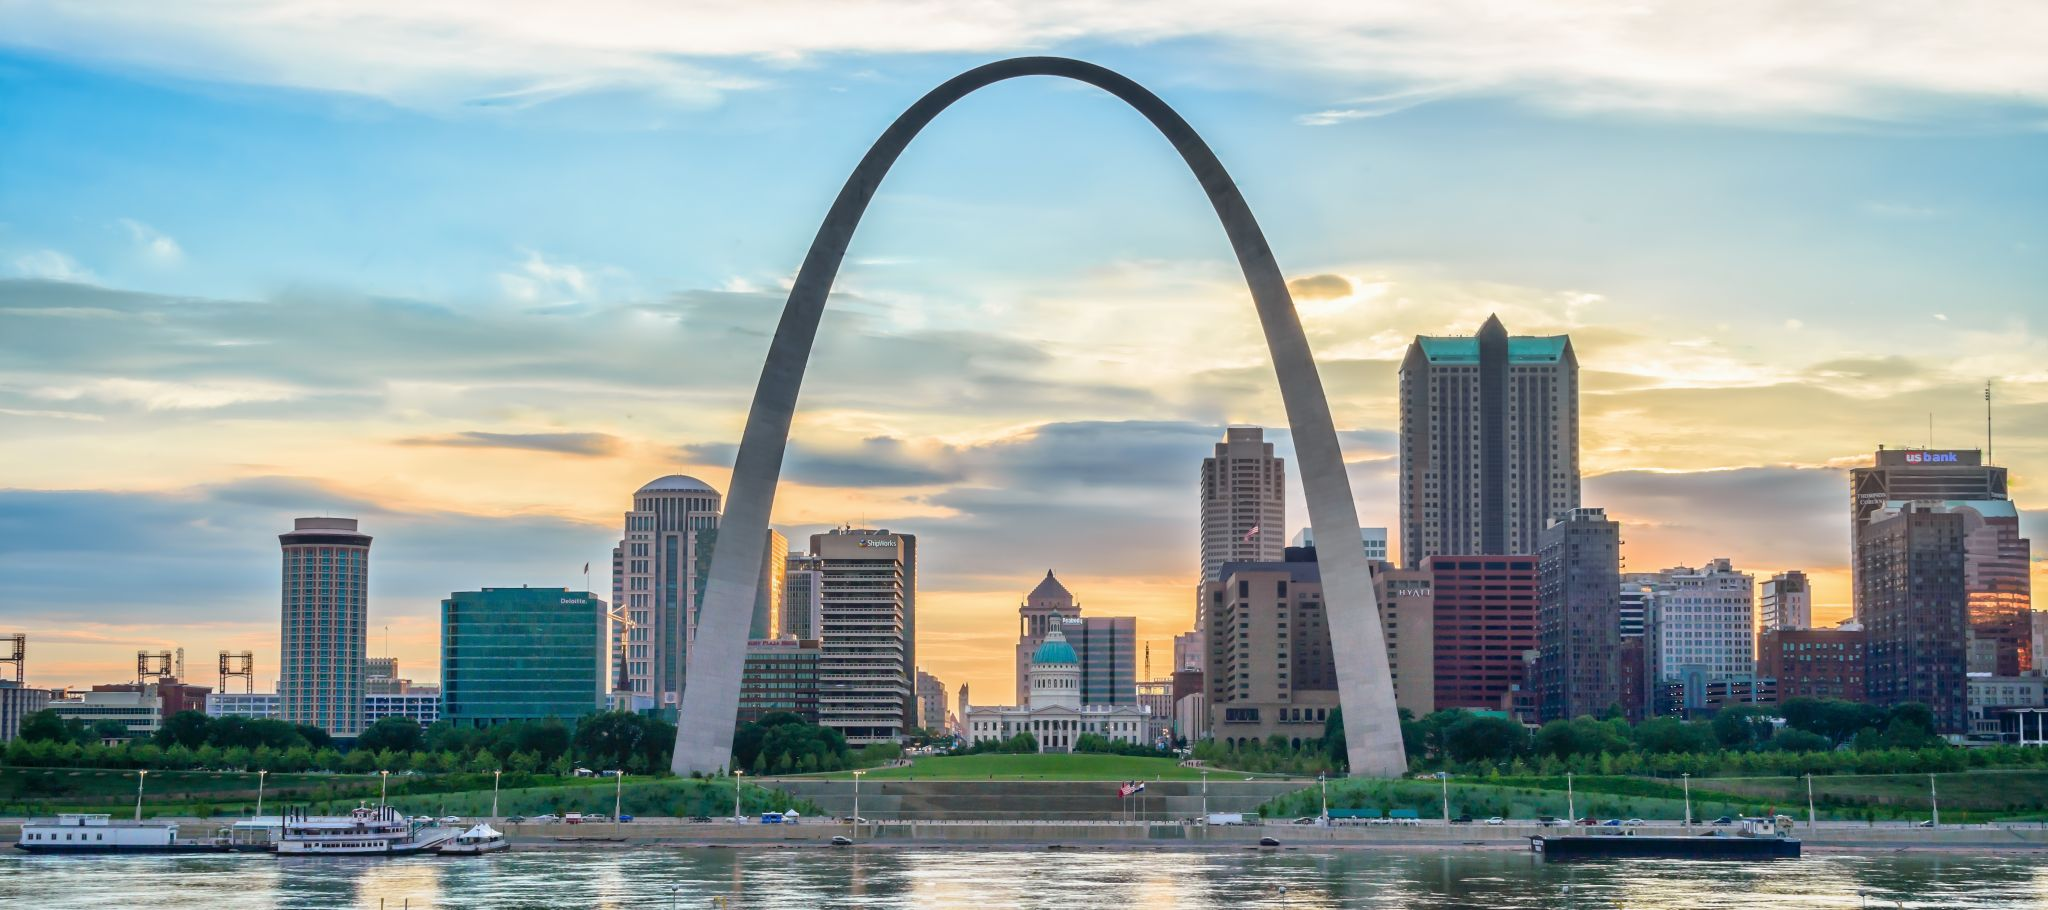 St. Louis Gateway Arch from Malcolm W. Martin State Park, USA